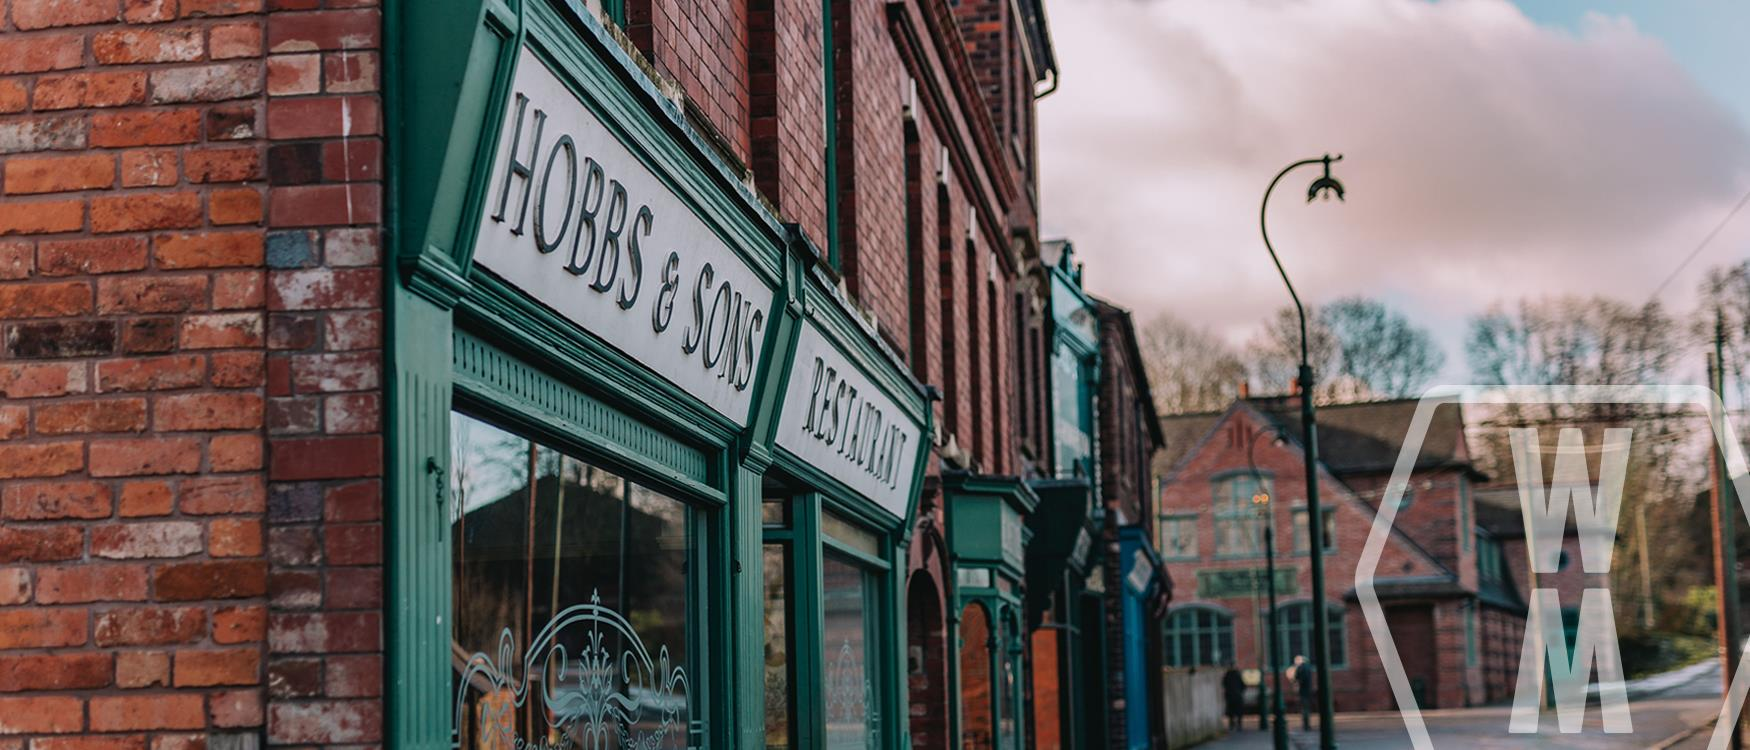 Hobbs and Sons Restaurant